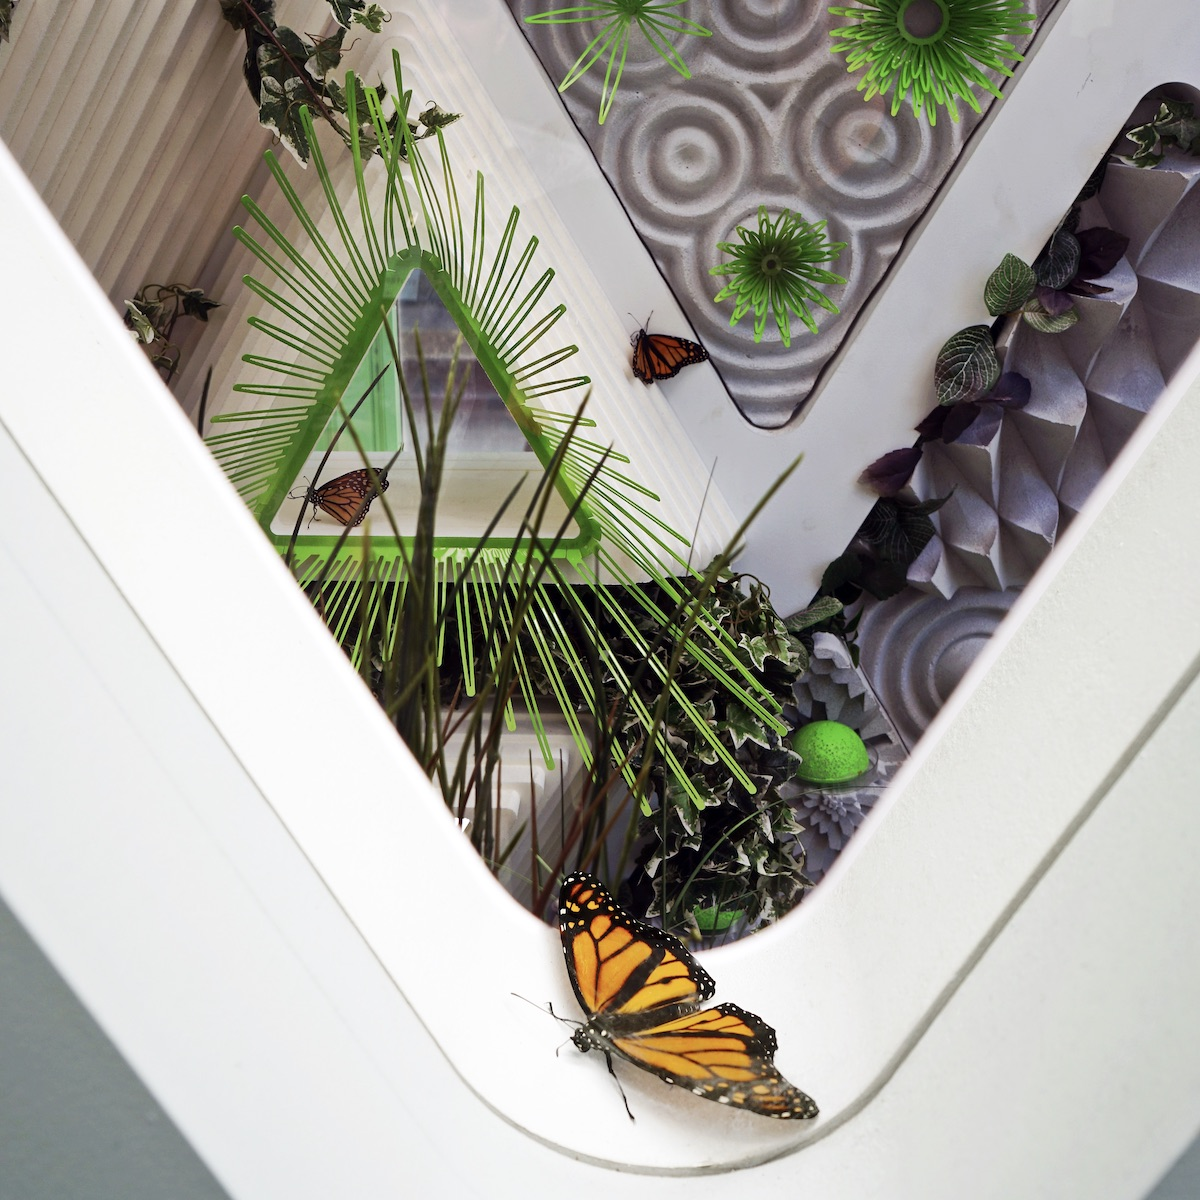 butterfly sanctuary, monarch sanctuary, terreform one, nolita, 23 cleveland place, architecture